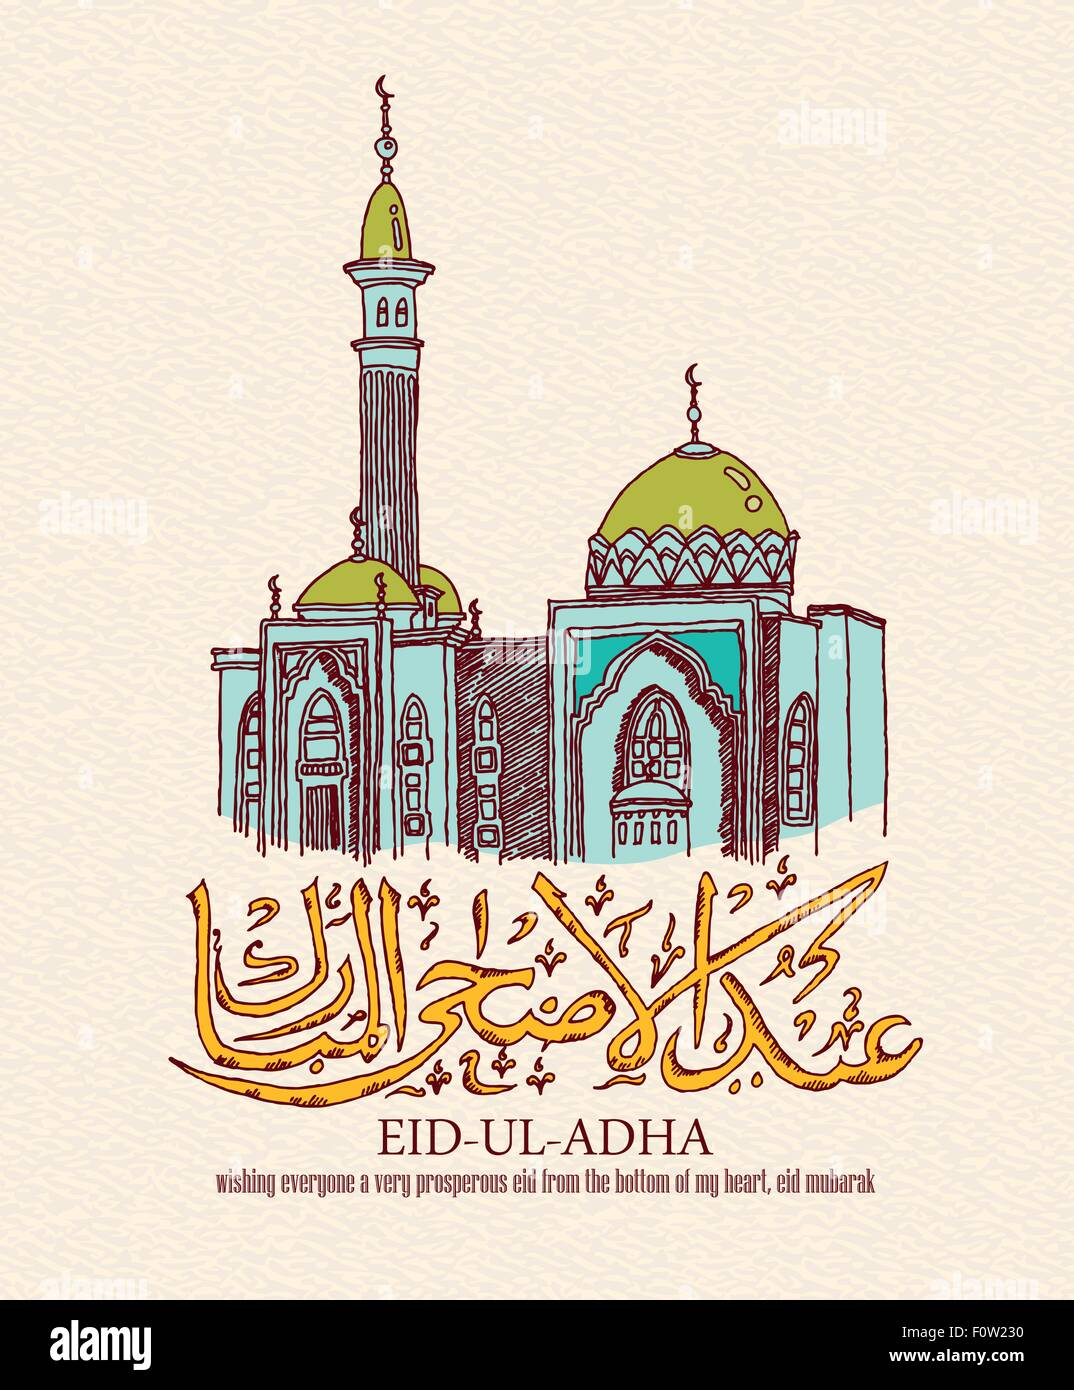 Arabic islamic calligraphy of text eid ul adha and old mosque in arabic islamic calligraphy of text eid ul adha and old mosque in retro style for muslim community festival celebrations kristyandbryce Image collections